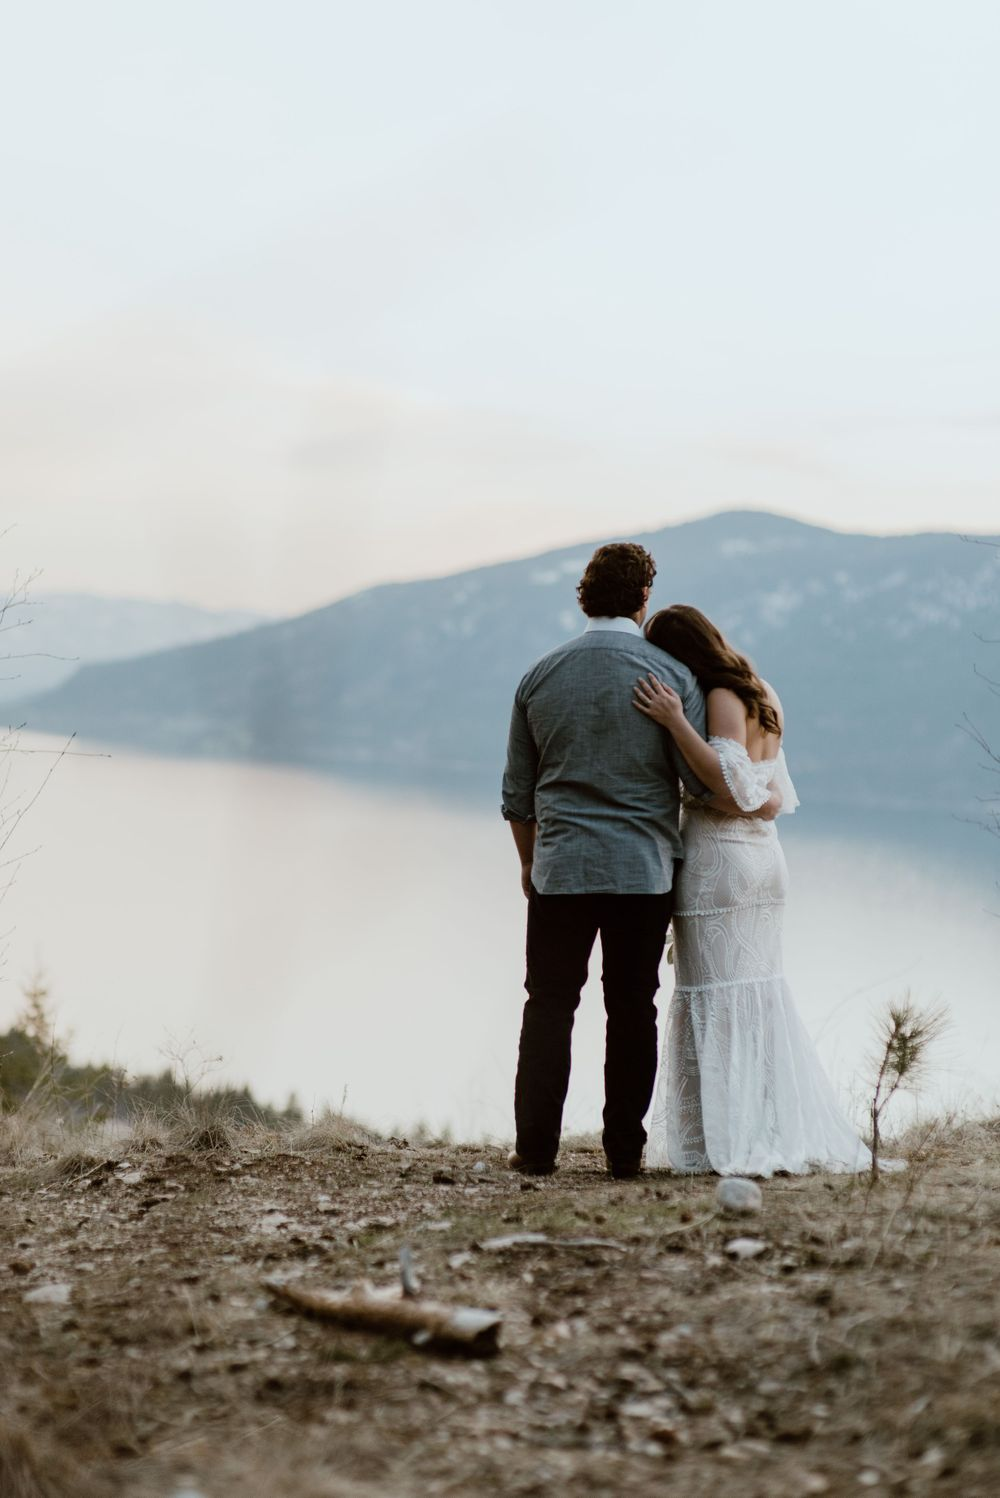 boho-bride-and-groom-eloping-on-a-mountain